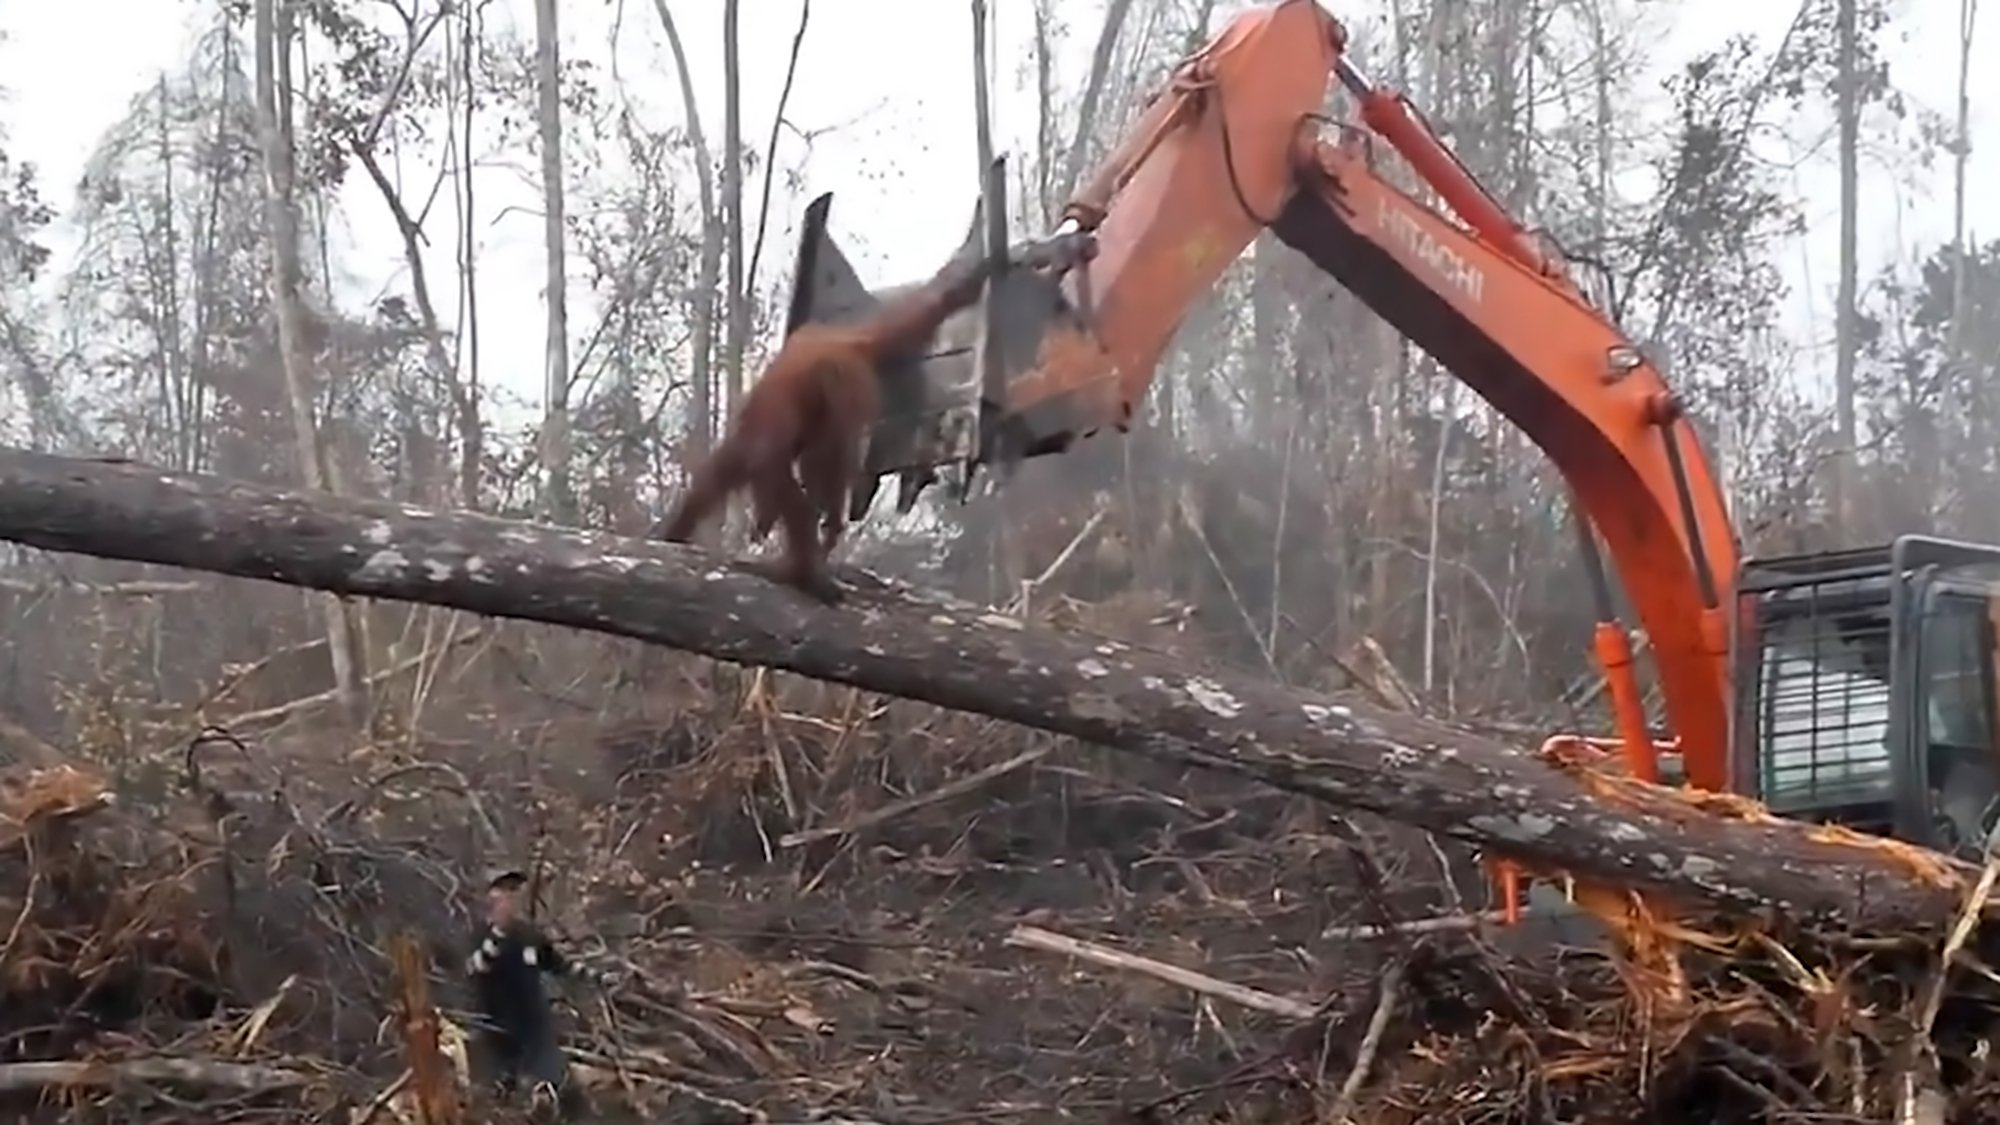 Pics shows: The orangutan attempts to stop the bulldozer with its bare hands; In this video an orangutan can been seen battling loggers and using its hands in an apparent bid halt the bulldozer that is tearing down his tree. The footage was shot in West Kalimantan, a western province in the Indonesian part of Borneo. The International Animal Rescue group that released the footage said the loggers had torn apart all the animal???s surrounding trees. They said the video shows the orangutan (Pongo pygmaeus) desperately seeking refuge after appearing to grapple with the teeth of the bulldozer???s hydraulic arm attachment. The primate then dips beneath it and jumps to the ground before it was allegedly chased off by loggers. Animal rescue workers later found the orangutan and brought the animal to safety. Two years ago Bornean orangutans were added to an international watch list because pressures such as poaching and the removal of their habitats were pushing them close to extinction. On Borneo there are an estimated 100,000 ??? around a third of the tally in 1973. If nothing is done to alter this downward course, predictions suggest there could be as few as 47,000 orangutans in 2025, with them likely being completely wiped out in 50 years.